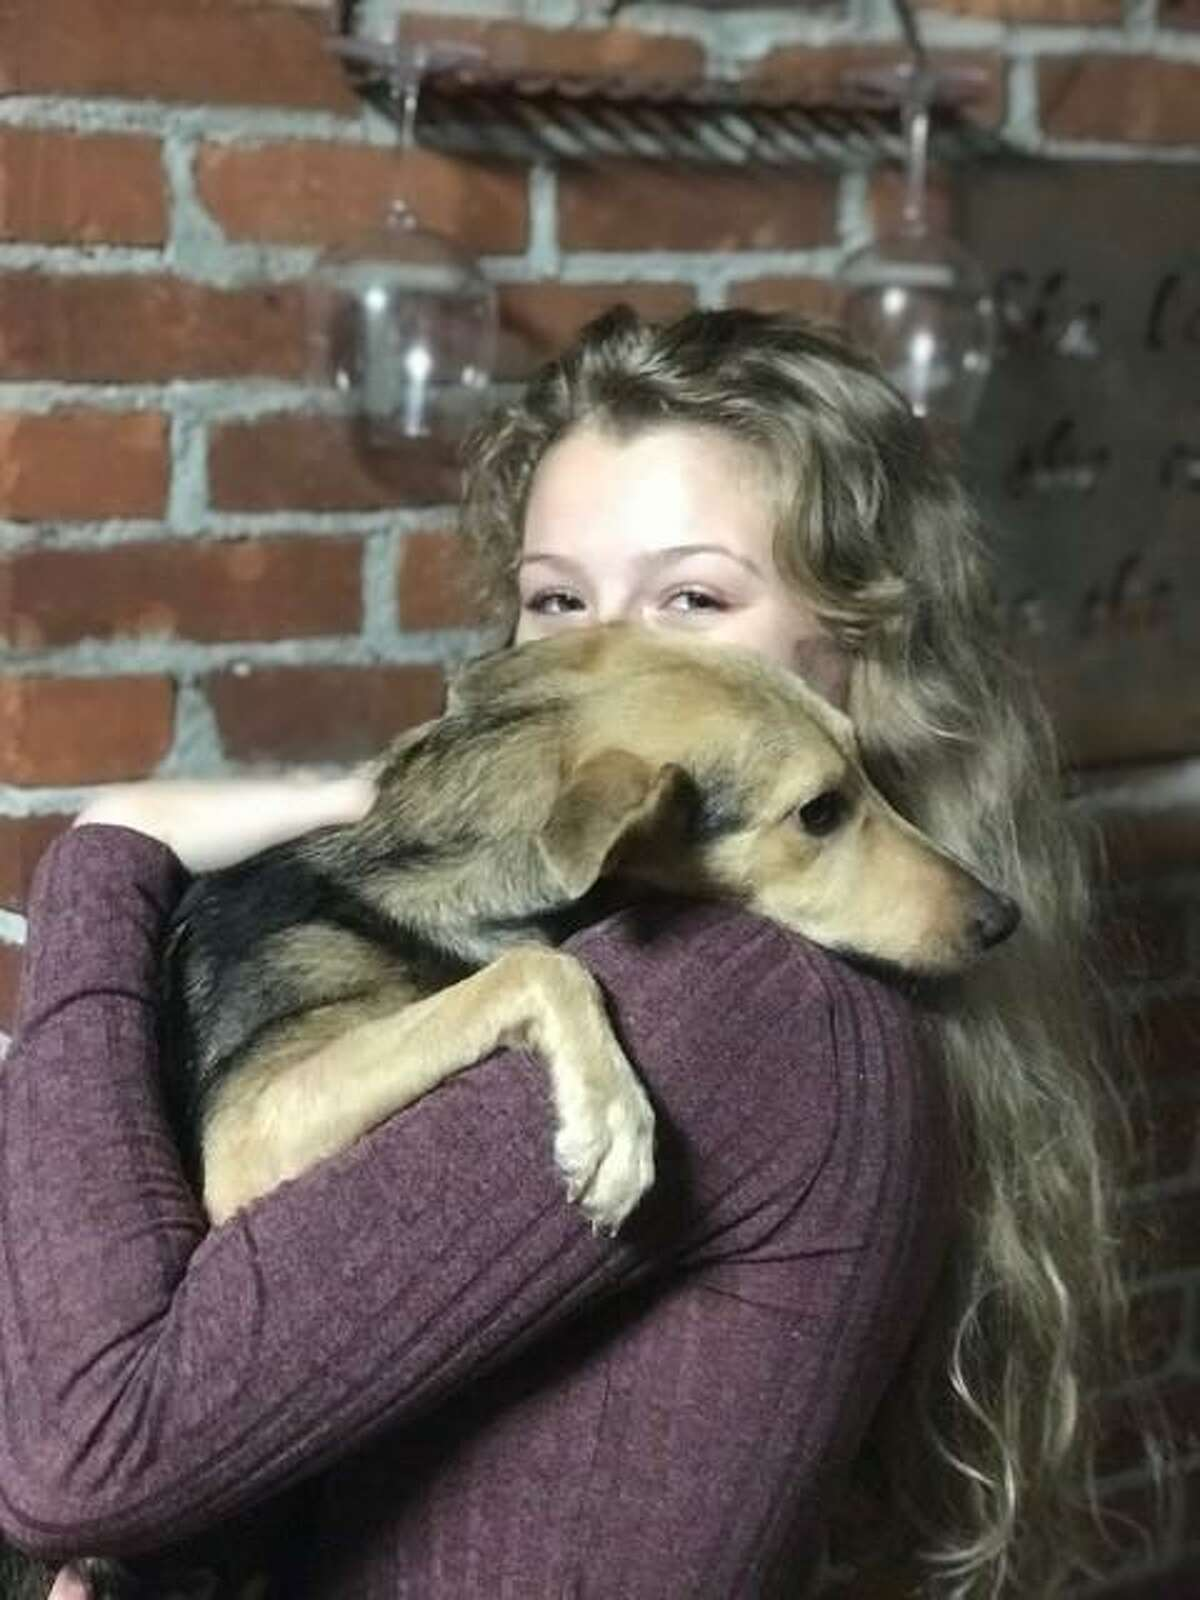 Gretta Silsdorf, 16, Kaeley Blum's oldest daughter holding Bubbles. After a tough trip, Bubbles has found a permanent home with the Blum family.